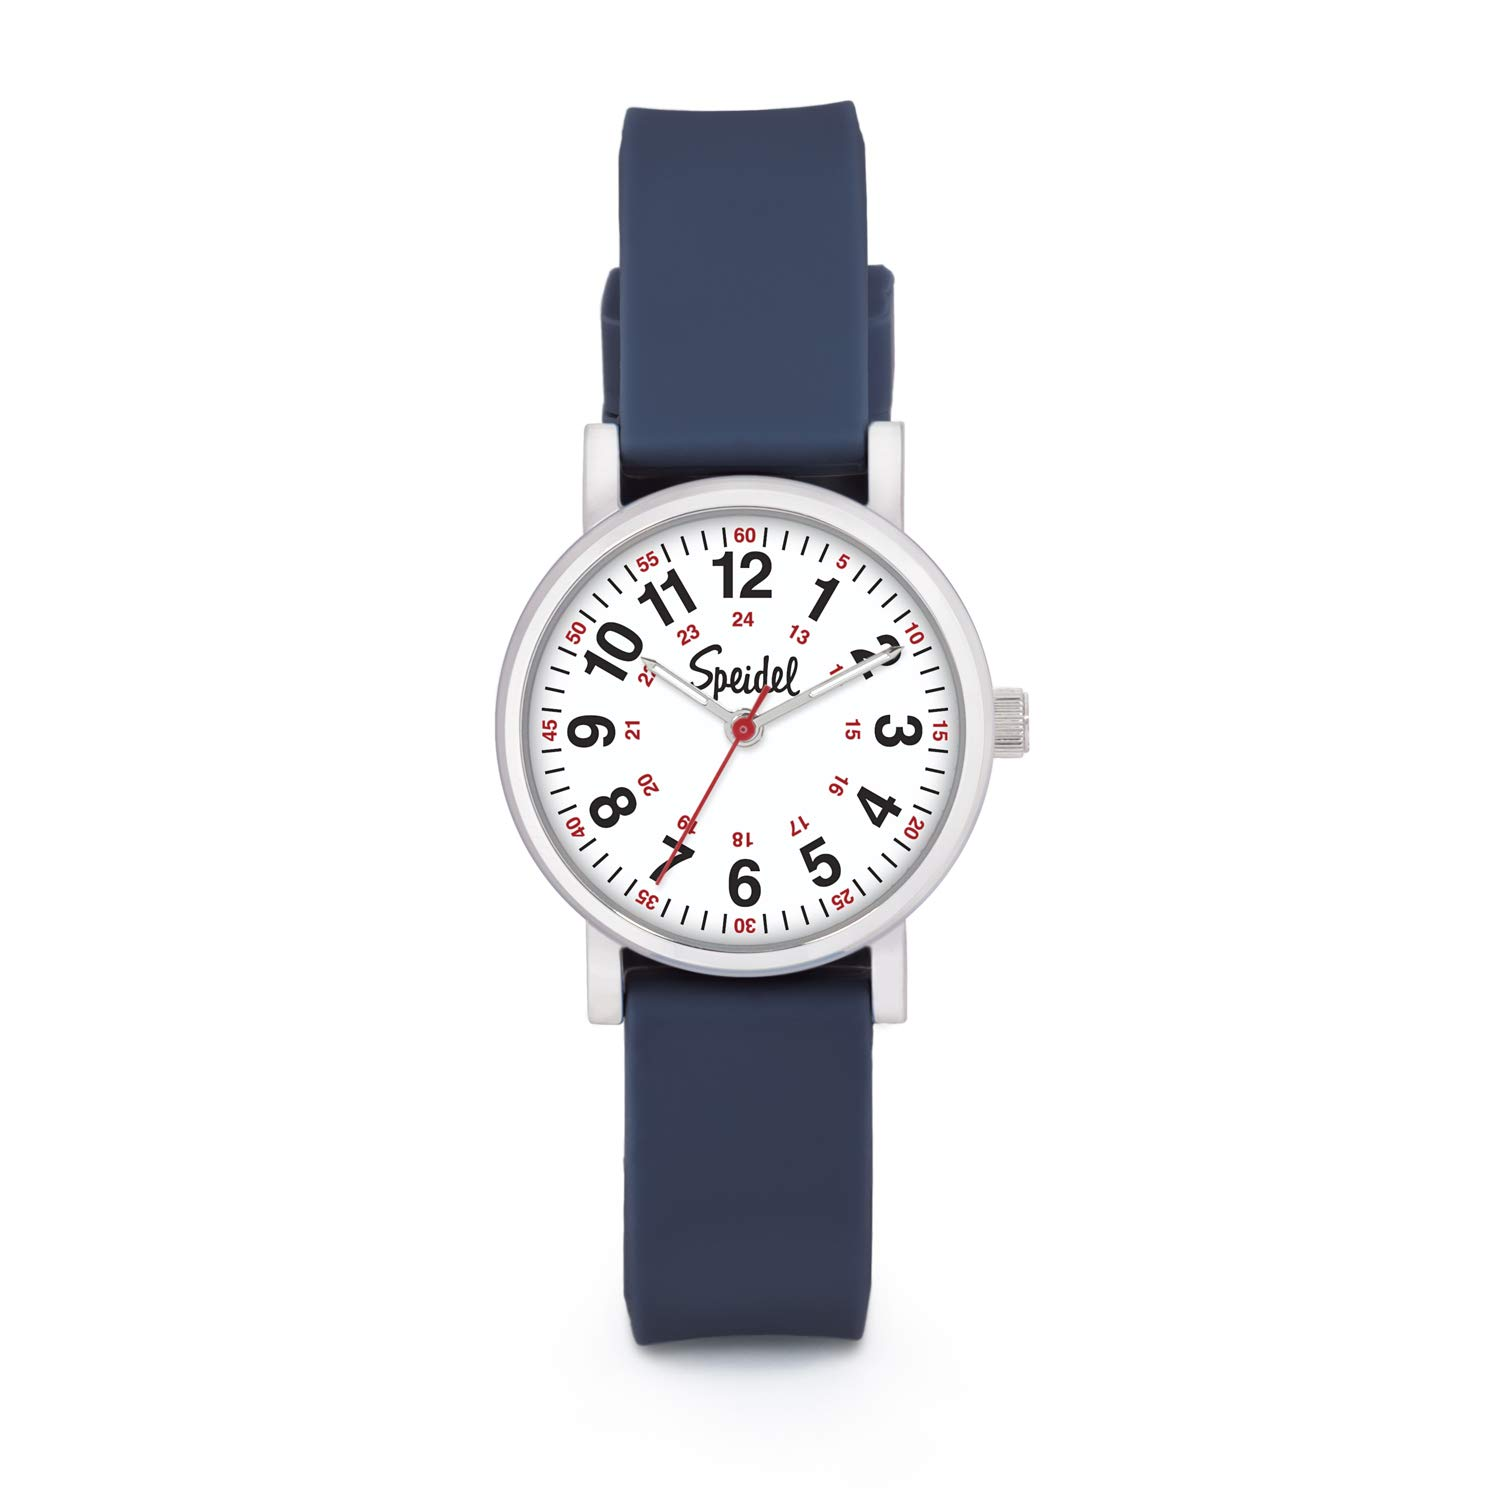 Speidel Women's Navy Blue Scrub Petite Watch for Medical Professionals Easy to Read Small Face, Luminous Hands, Silicone Band, Second Hand, Military Time for Nurses, Students in Scrub Matching Colors by Speidel